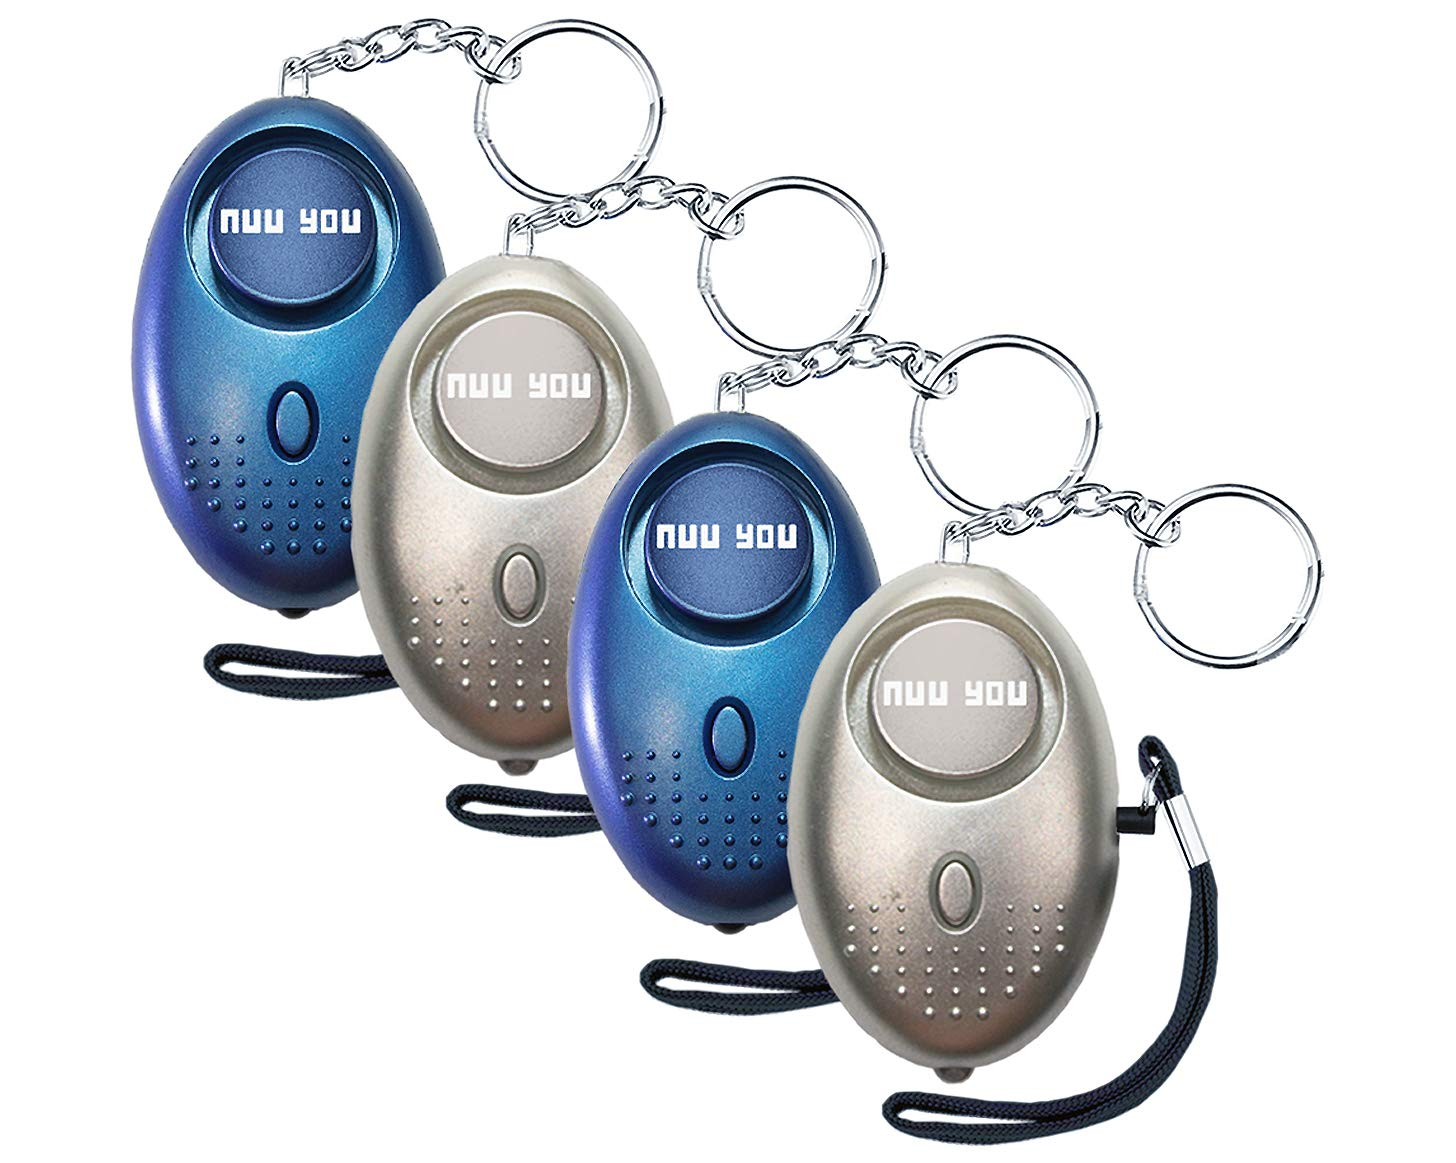 Nuu You Personal Alarms for Woman Siren 140 DB with LED Light Small Safety Sound Alarm Keychain for Personal Alarm Women//Kids//Girls//Elderly Self Defense Device Policeman Recommend china 4 Pack